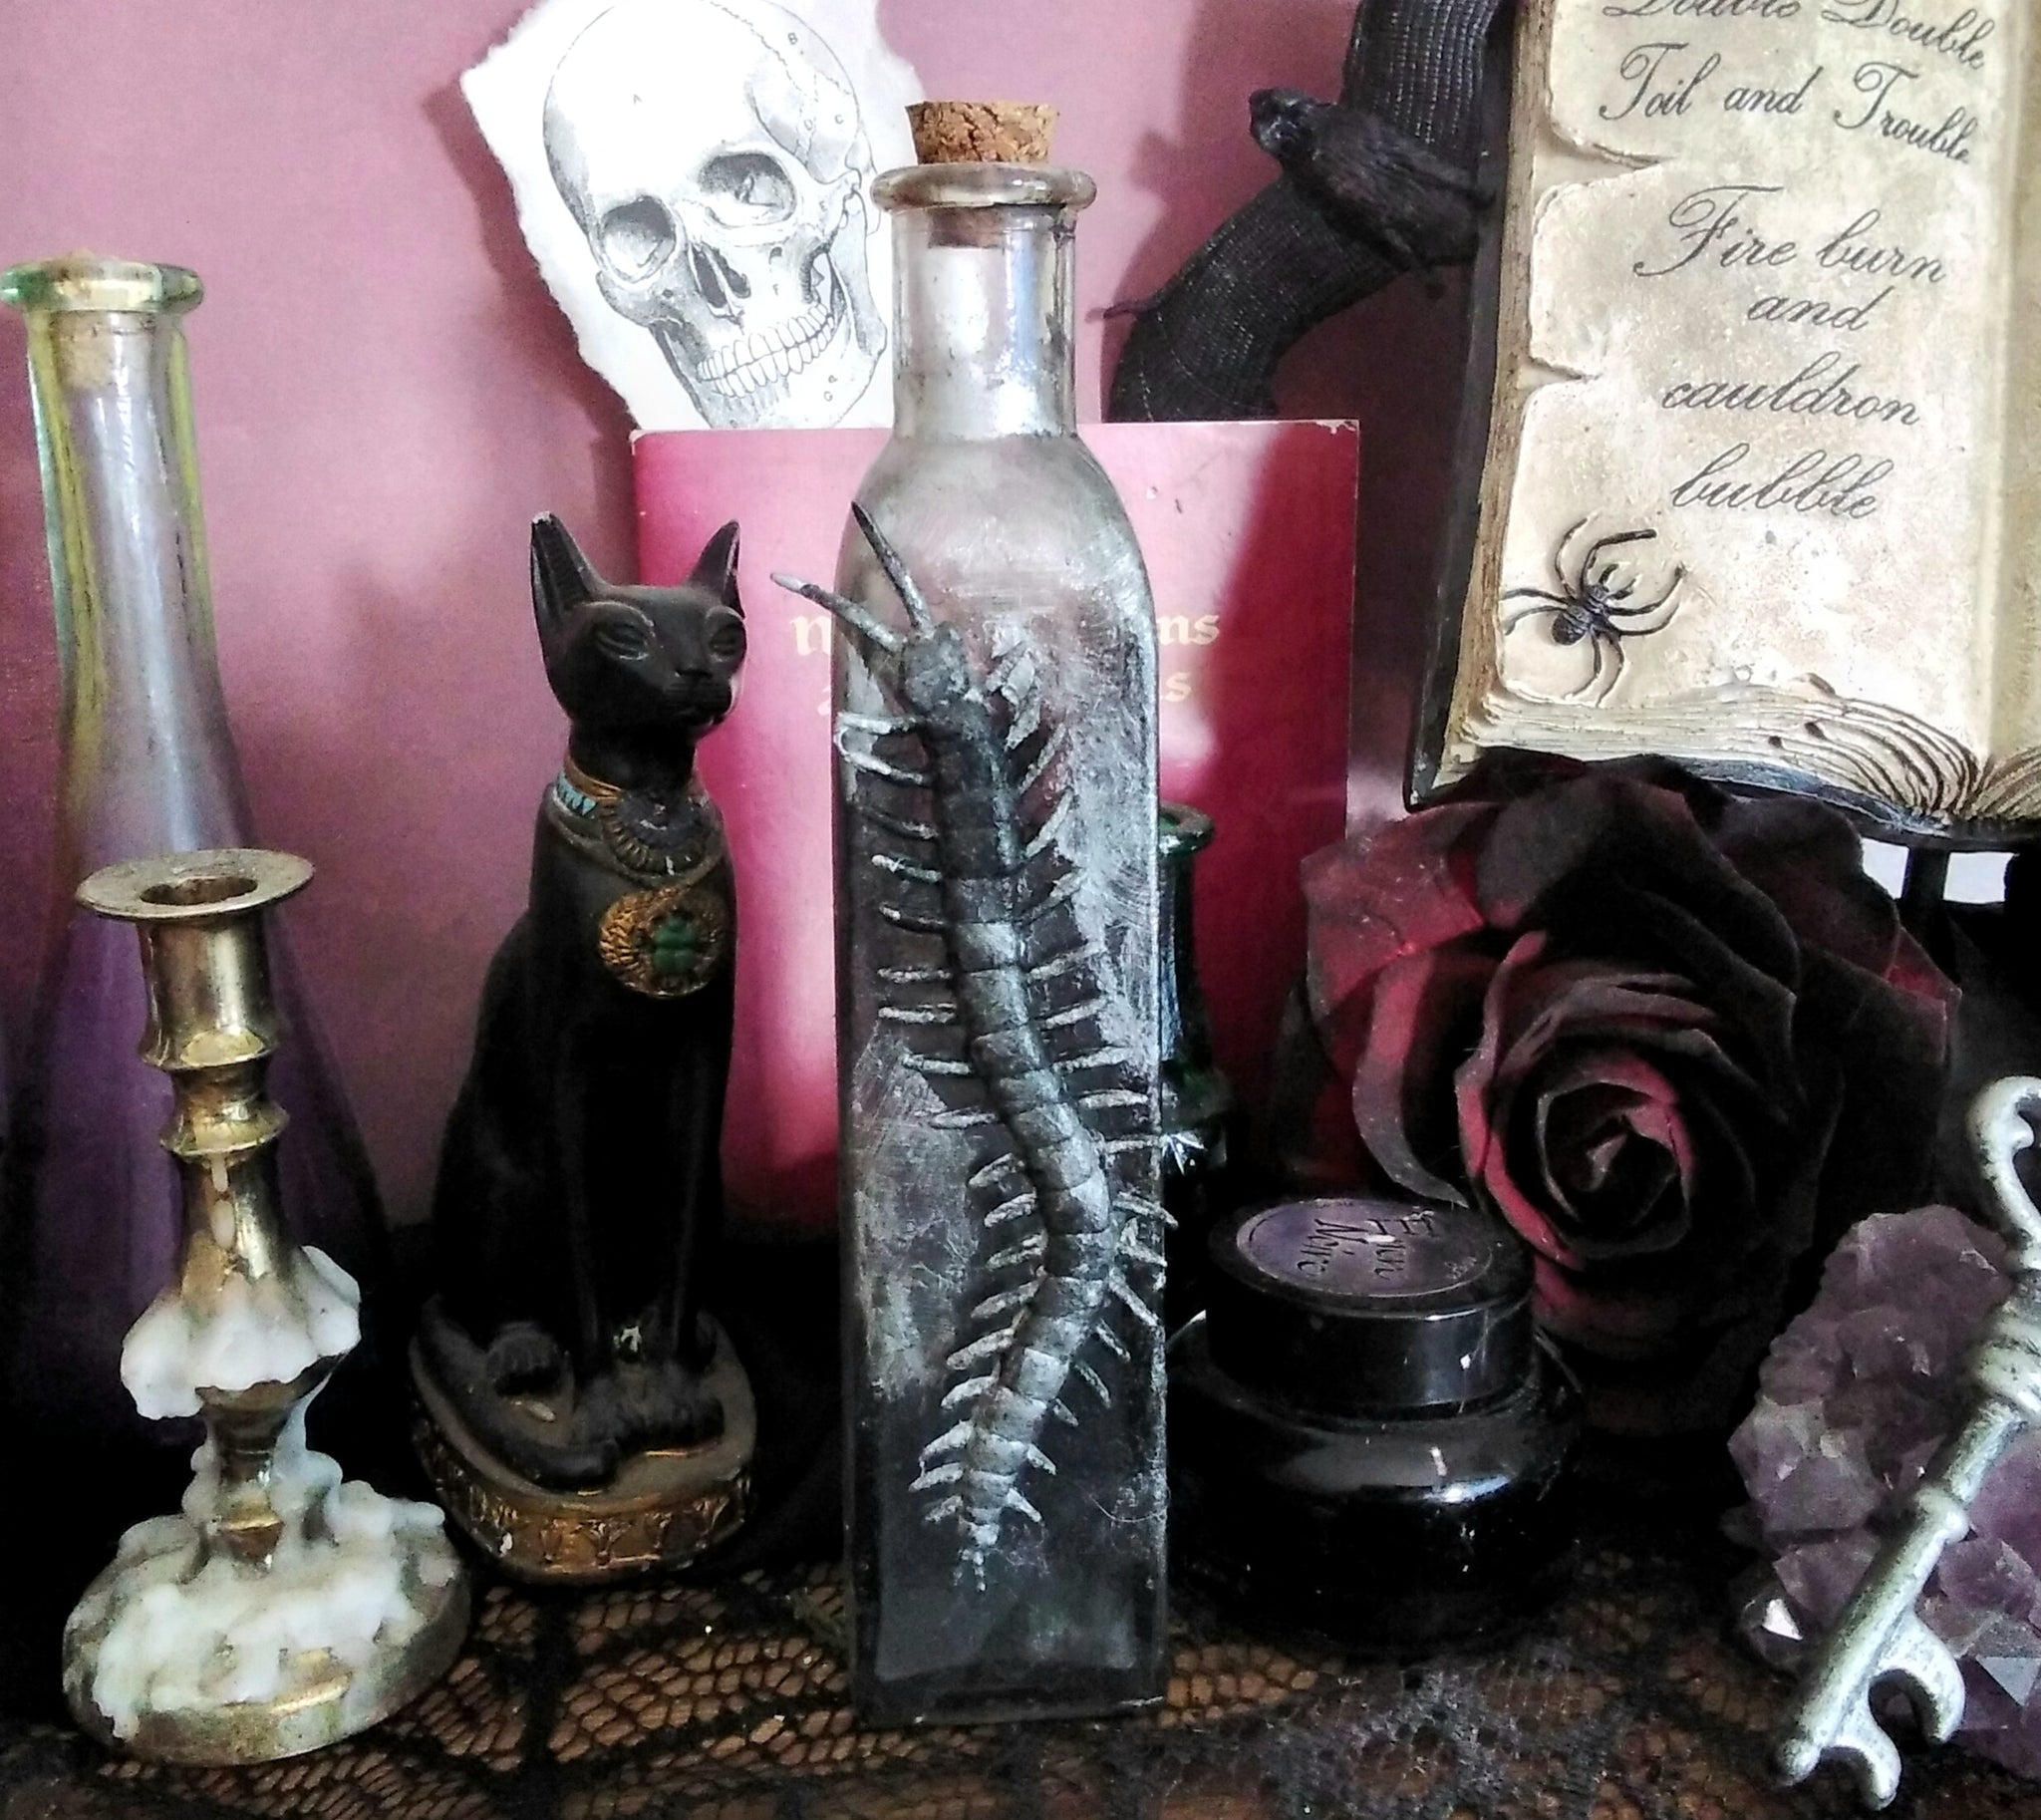 SWAMP WATER Apothecary Jar - Witch Ingredient Jar Props and Decor